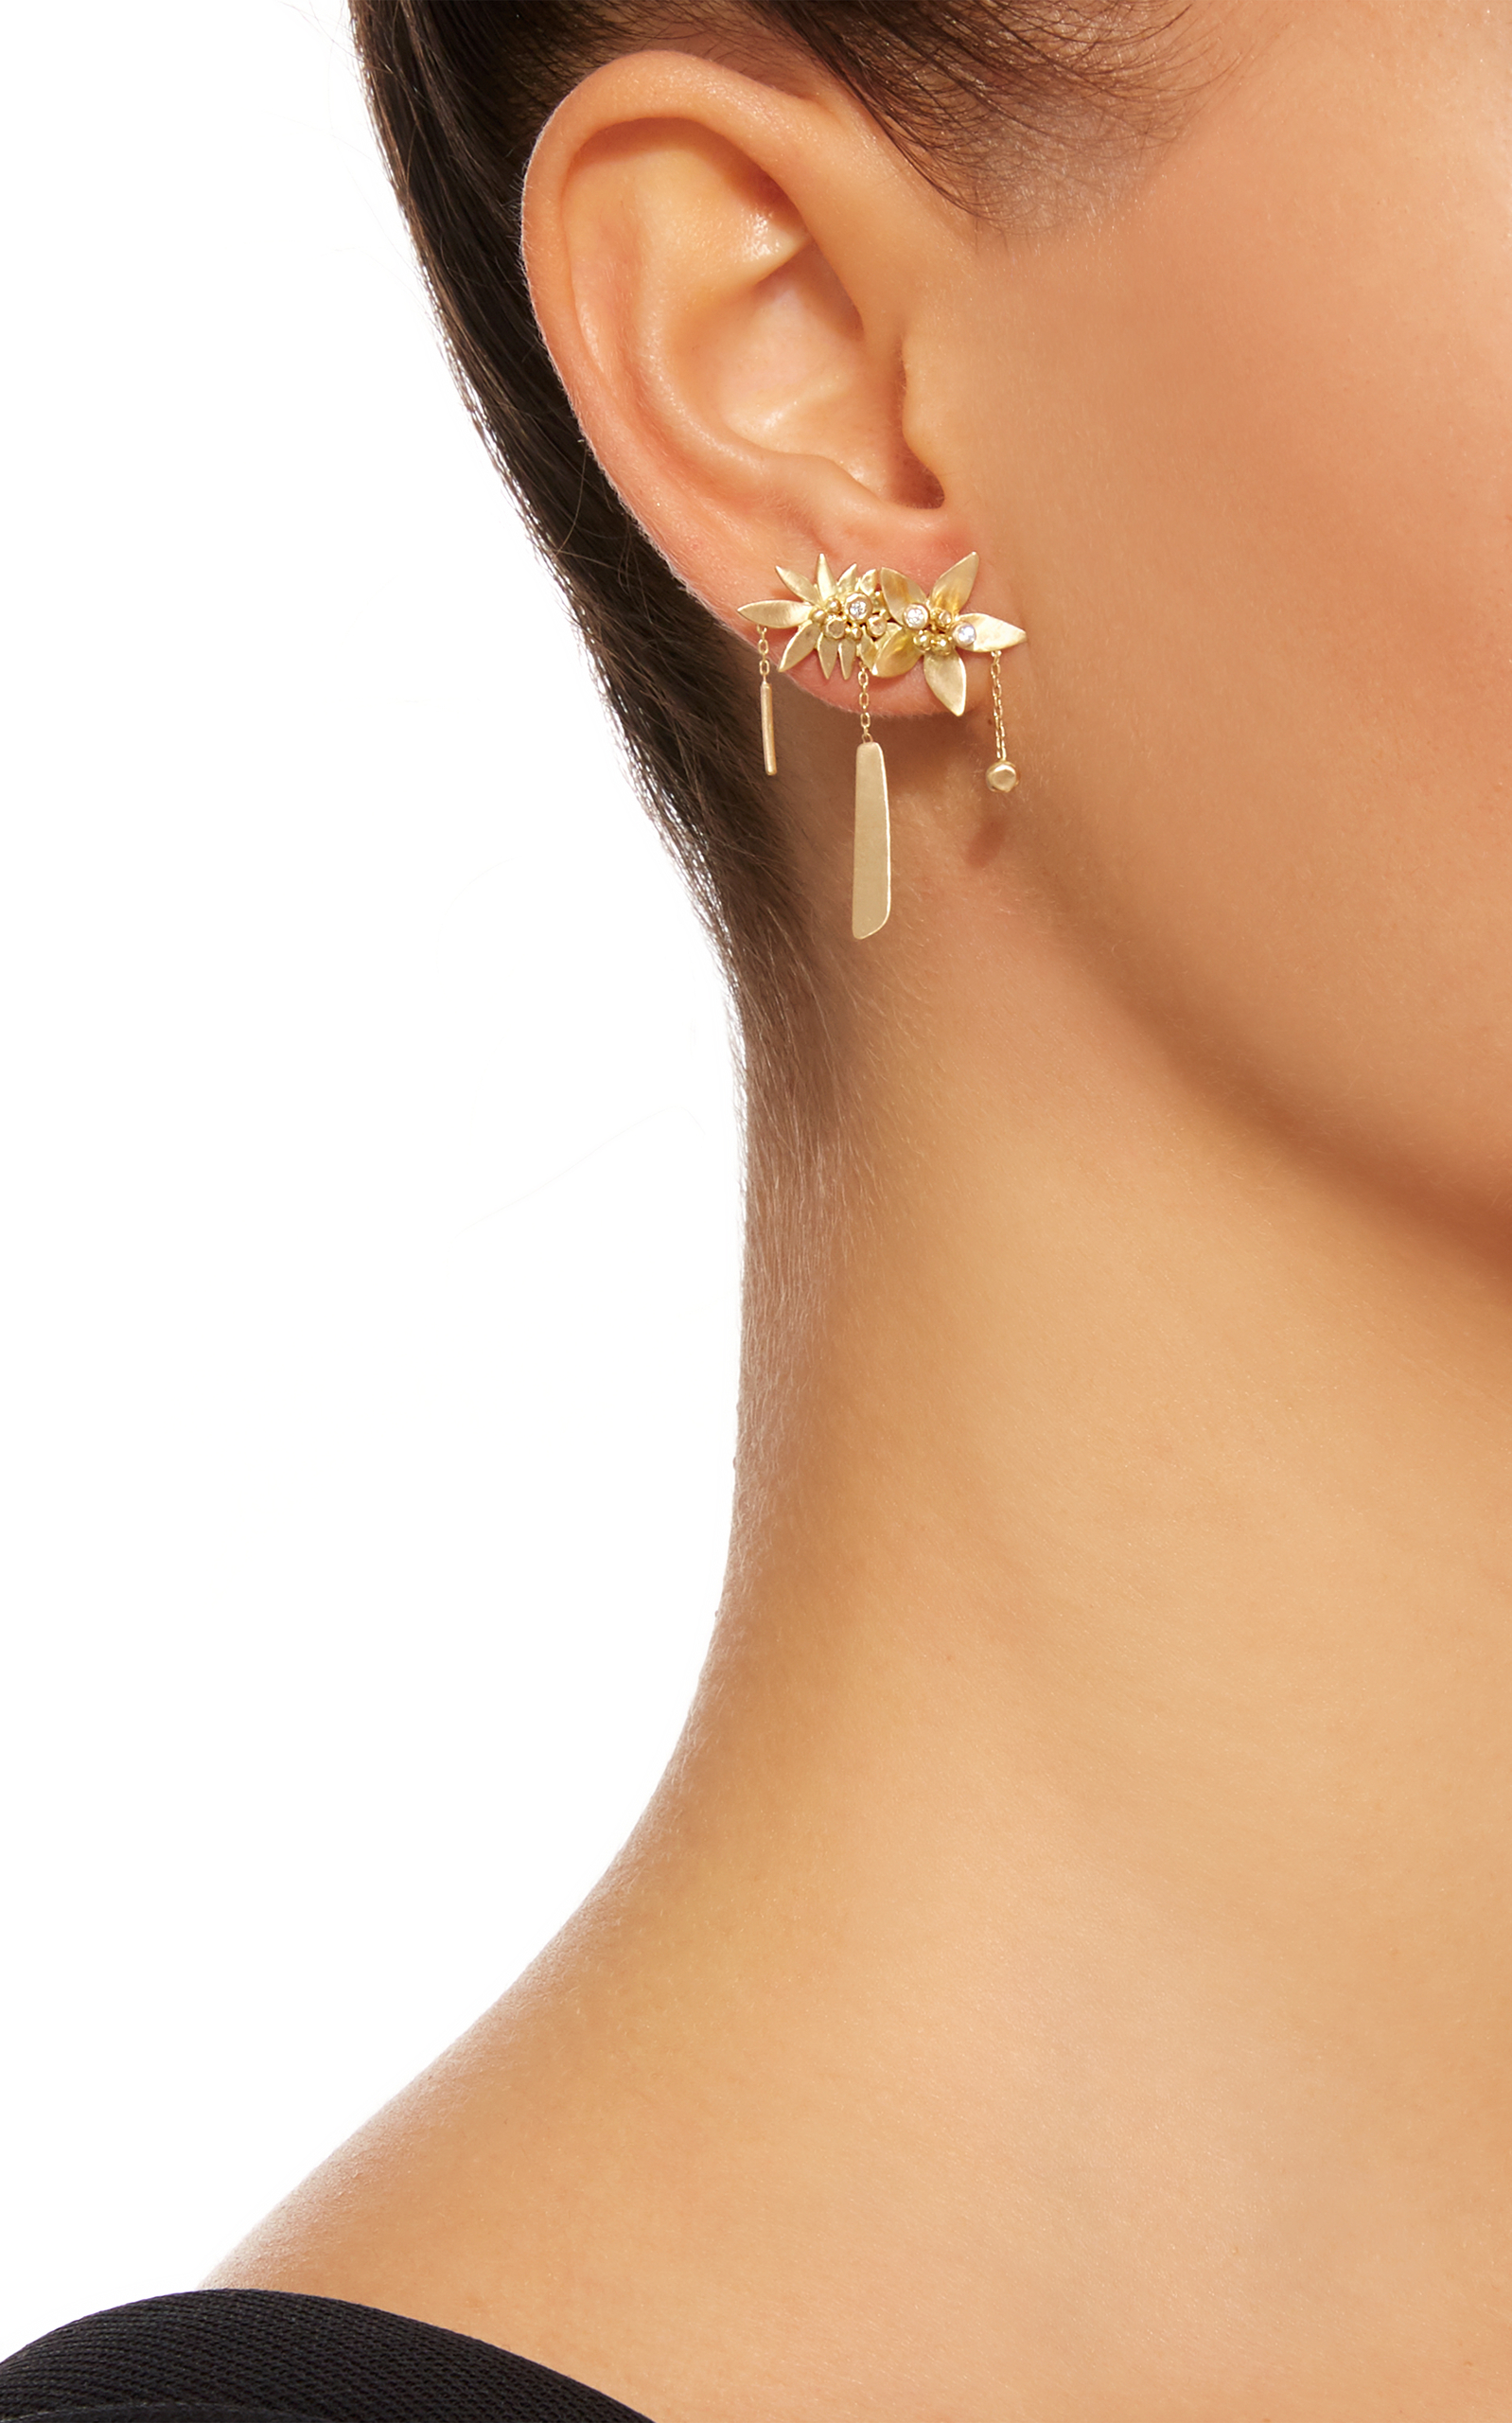 earring metallic faux chloe chlo lyst gold pearl s in women jewelry earrings single darcey